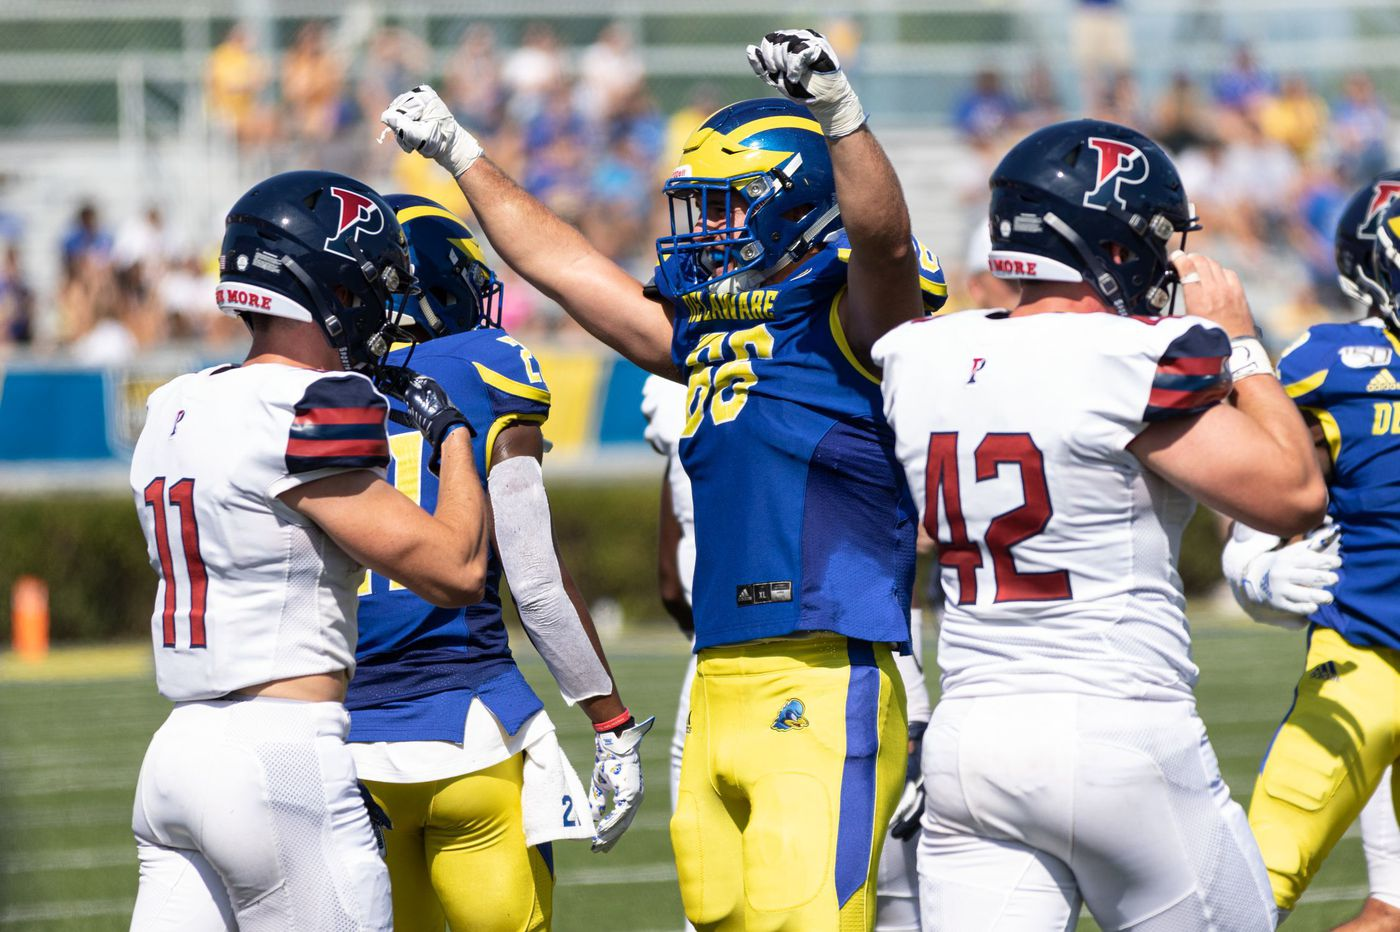 Penn's upset at Delaware falls short, 28-27, on failed two-point conversion